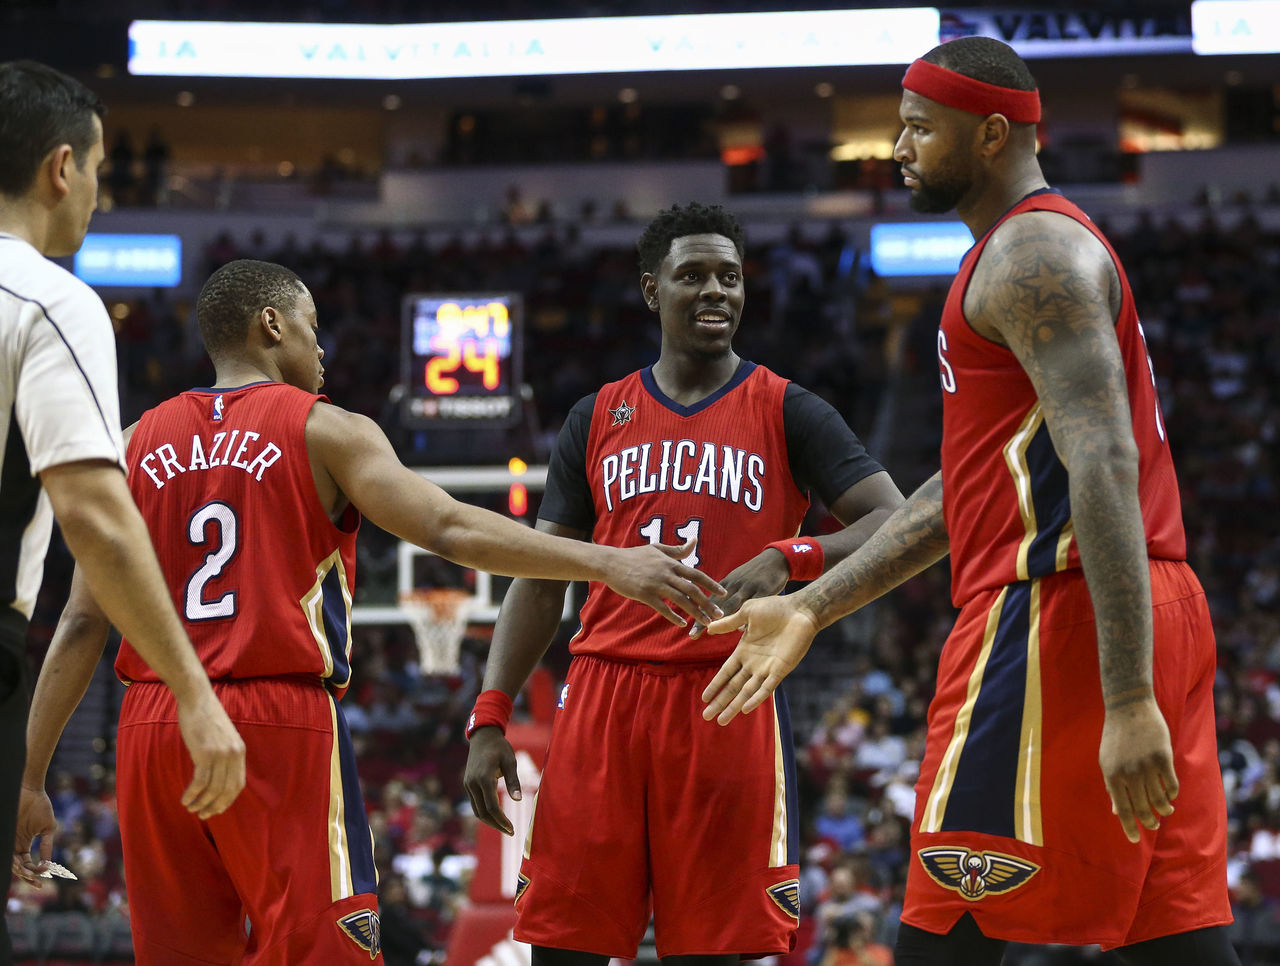 Cropped 2017 03 25t020849z 567724548 nocid rtrmadp 3 nba new orleans pelicans at houston rockets